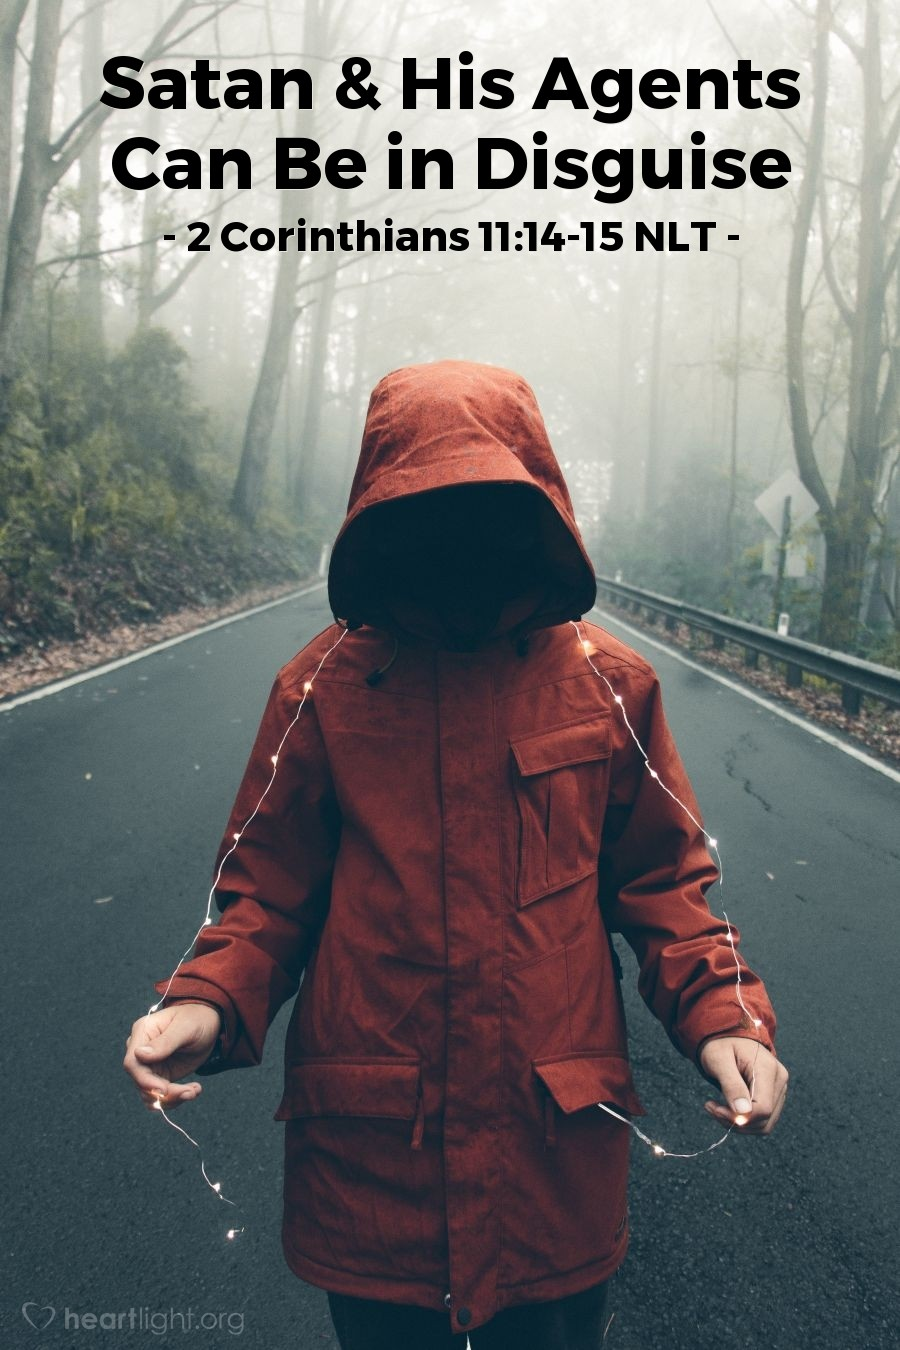 Illustration of 2 Corinthians 11:14-15 NLT — But I am not surprised! Even Satan disguises himself as an angel of light. So it is no wonder that his servants also disguise themselves as servants of righteousness. In the end they will get the punishment their wicked deeds deserve.